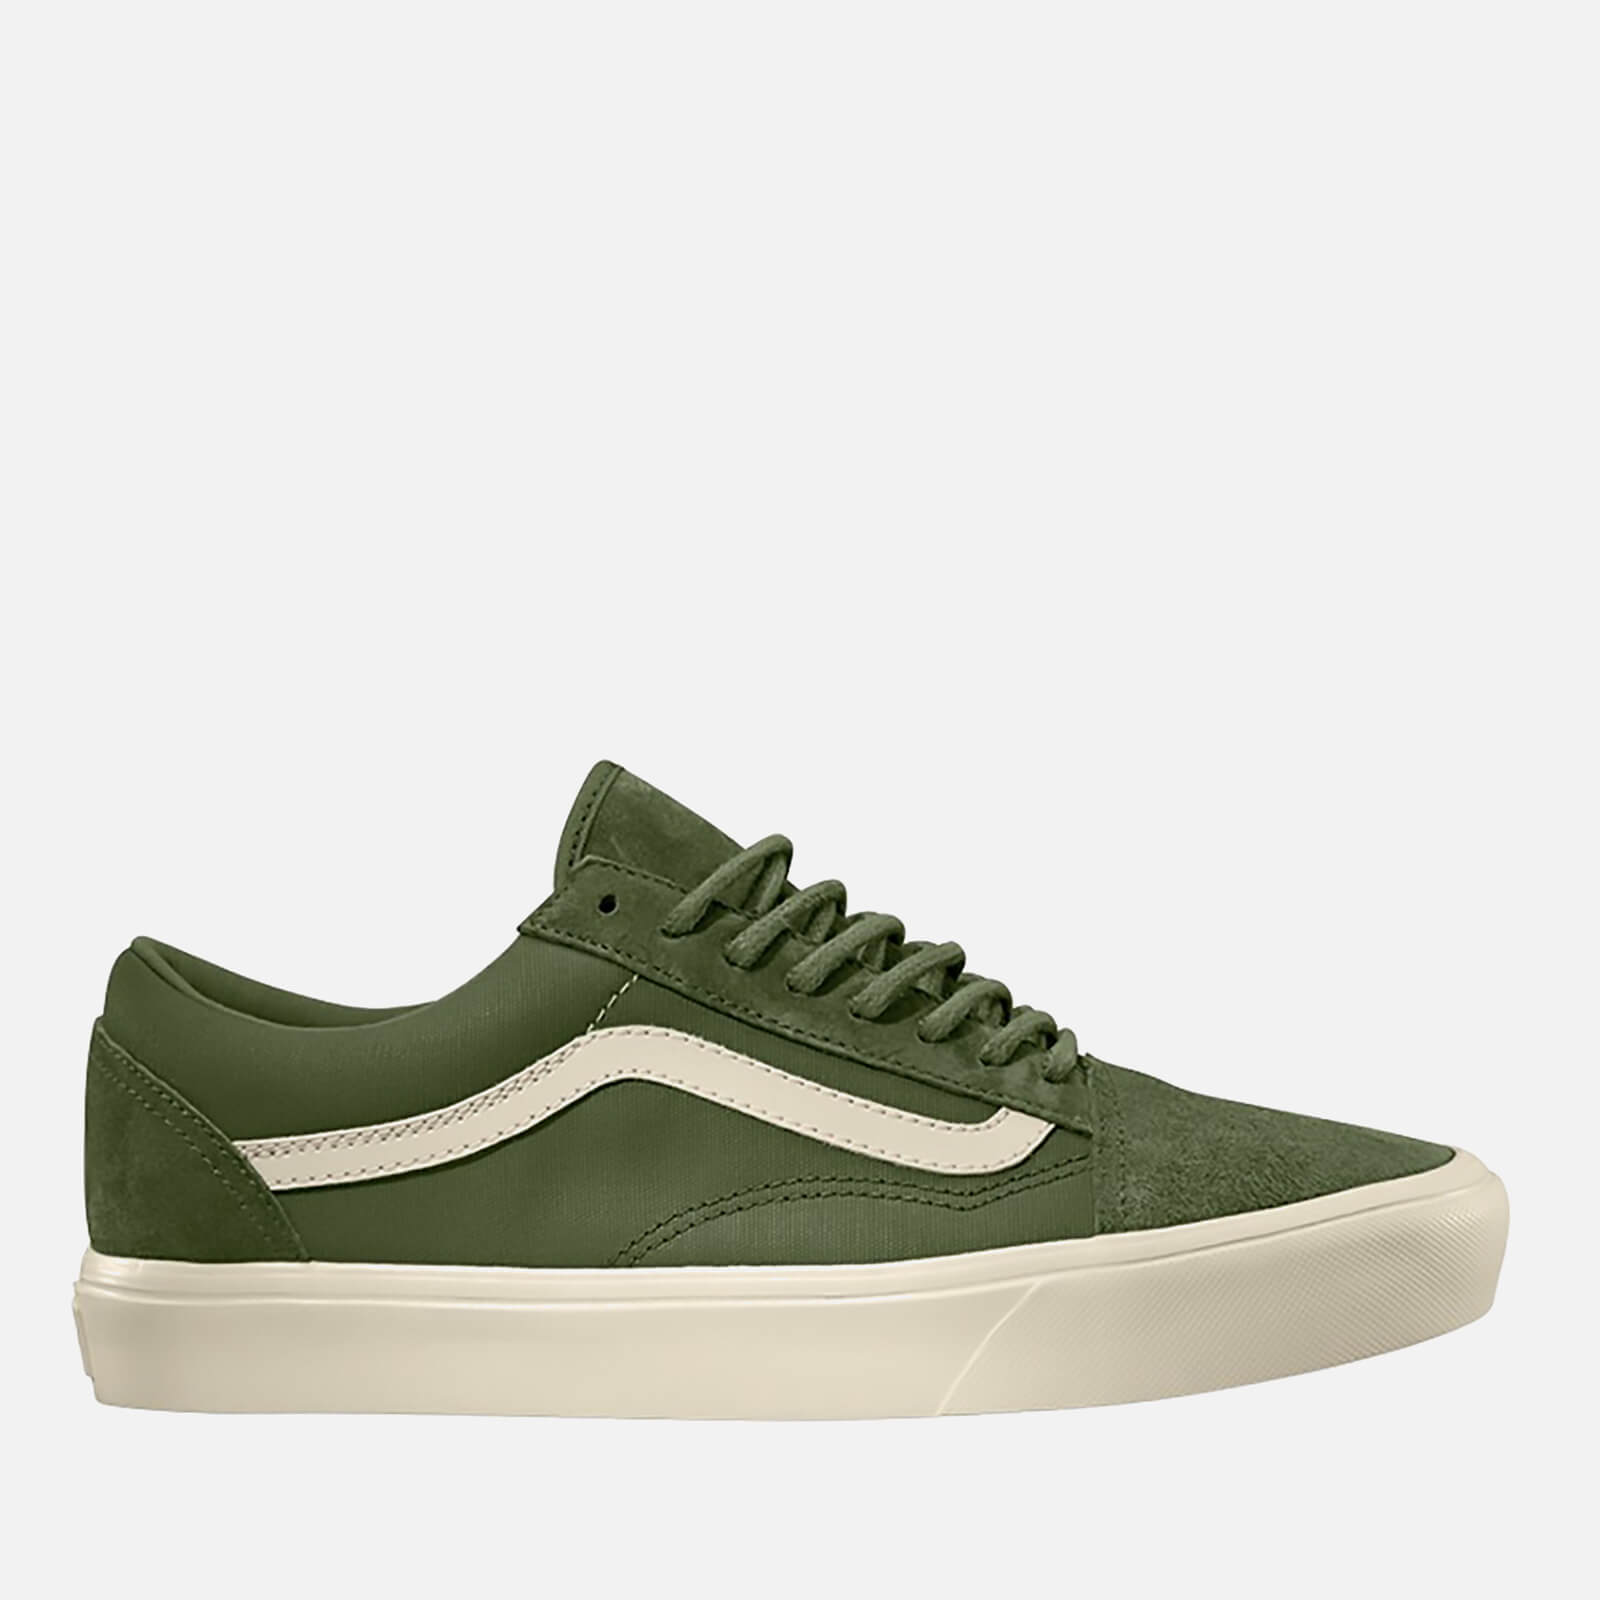 9ef6f89b08ba2f Vans X Rains Men s Old Skool Lite Trainers - Clover Turtledove - Free UK  Delivery over £50